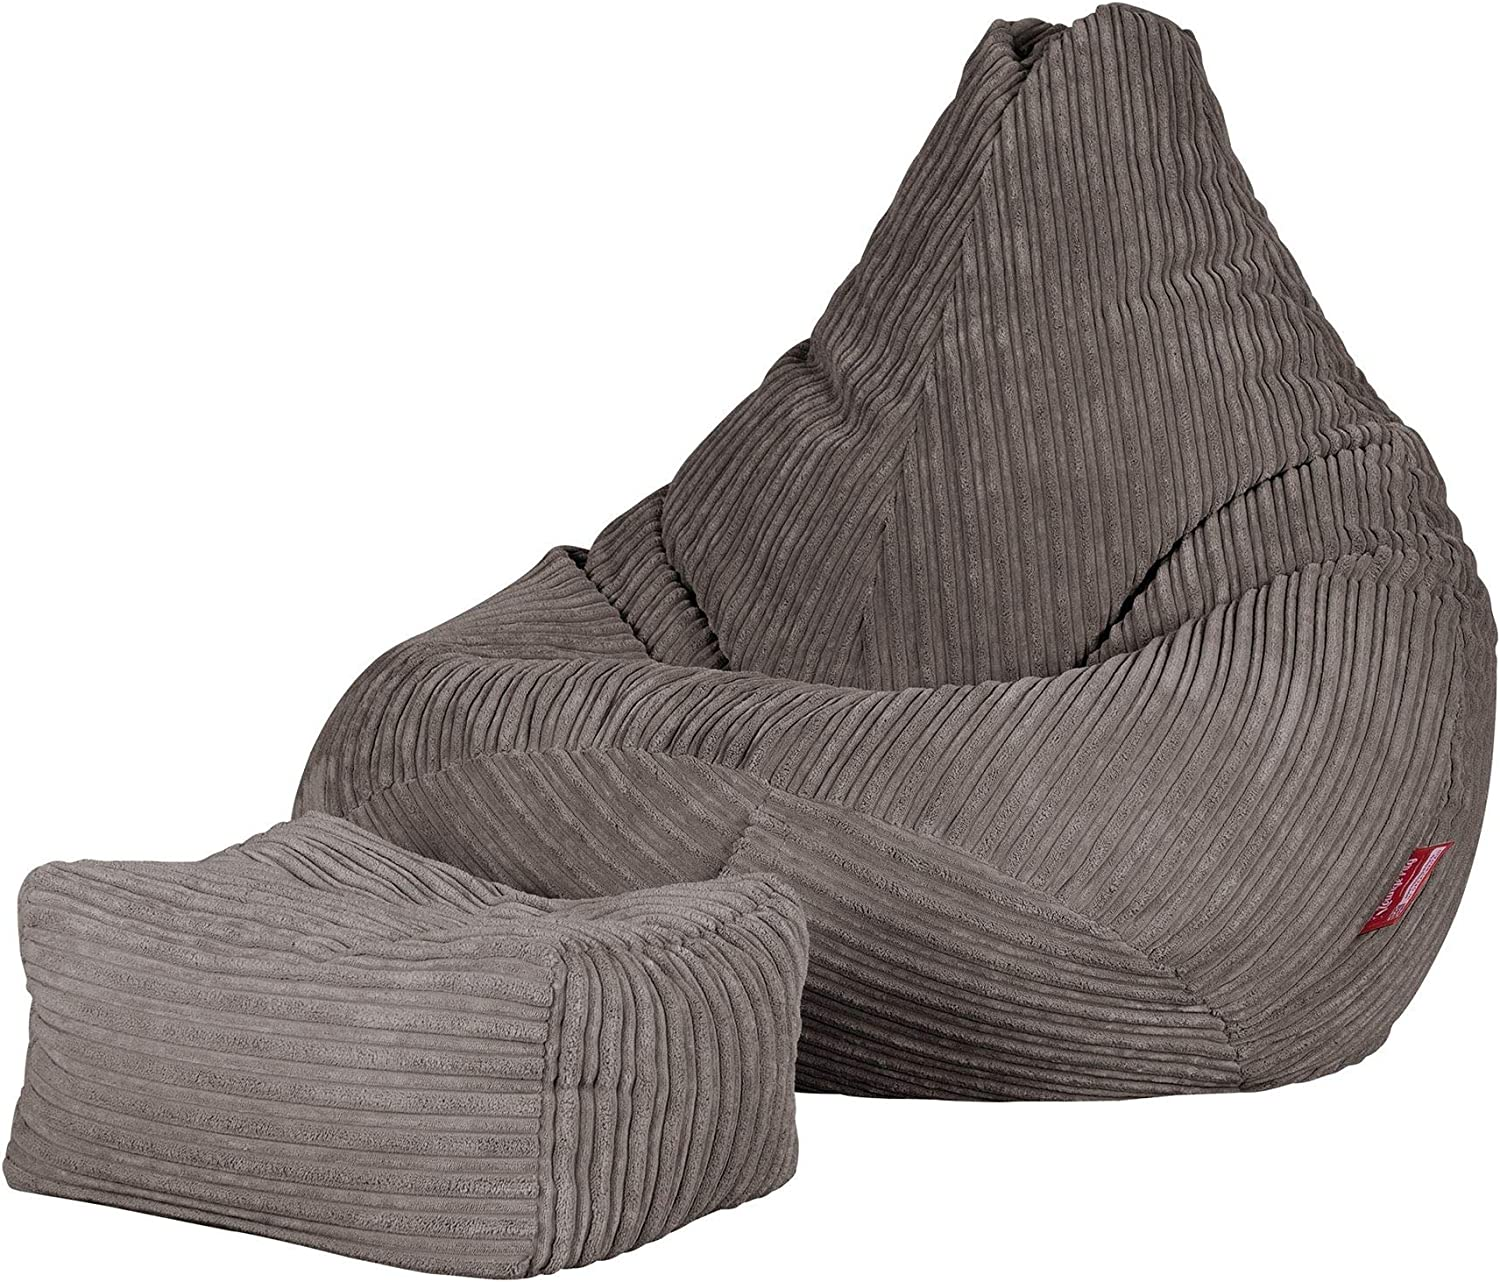 Lounge Pug® - CORD - Bean Bag Footstool - Small - Graphite Grey - (Size 20cm H x 35cm D x 45cm Wide) Grey